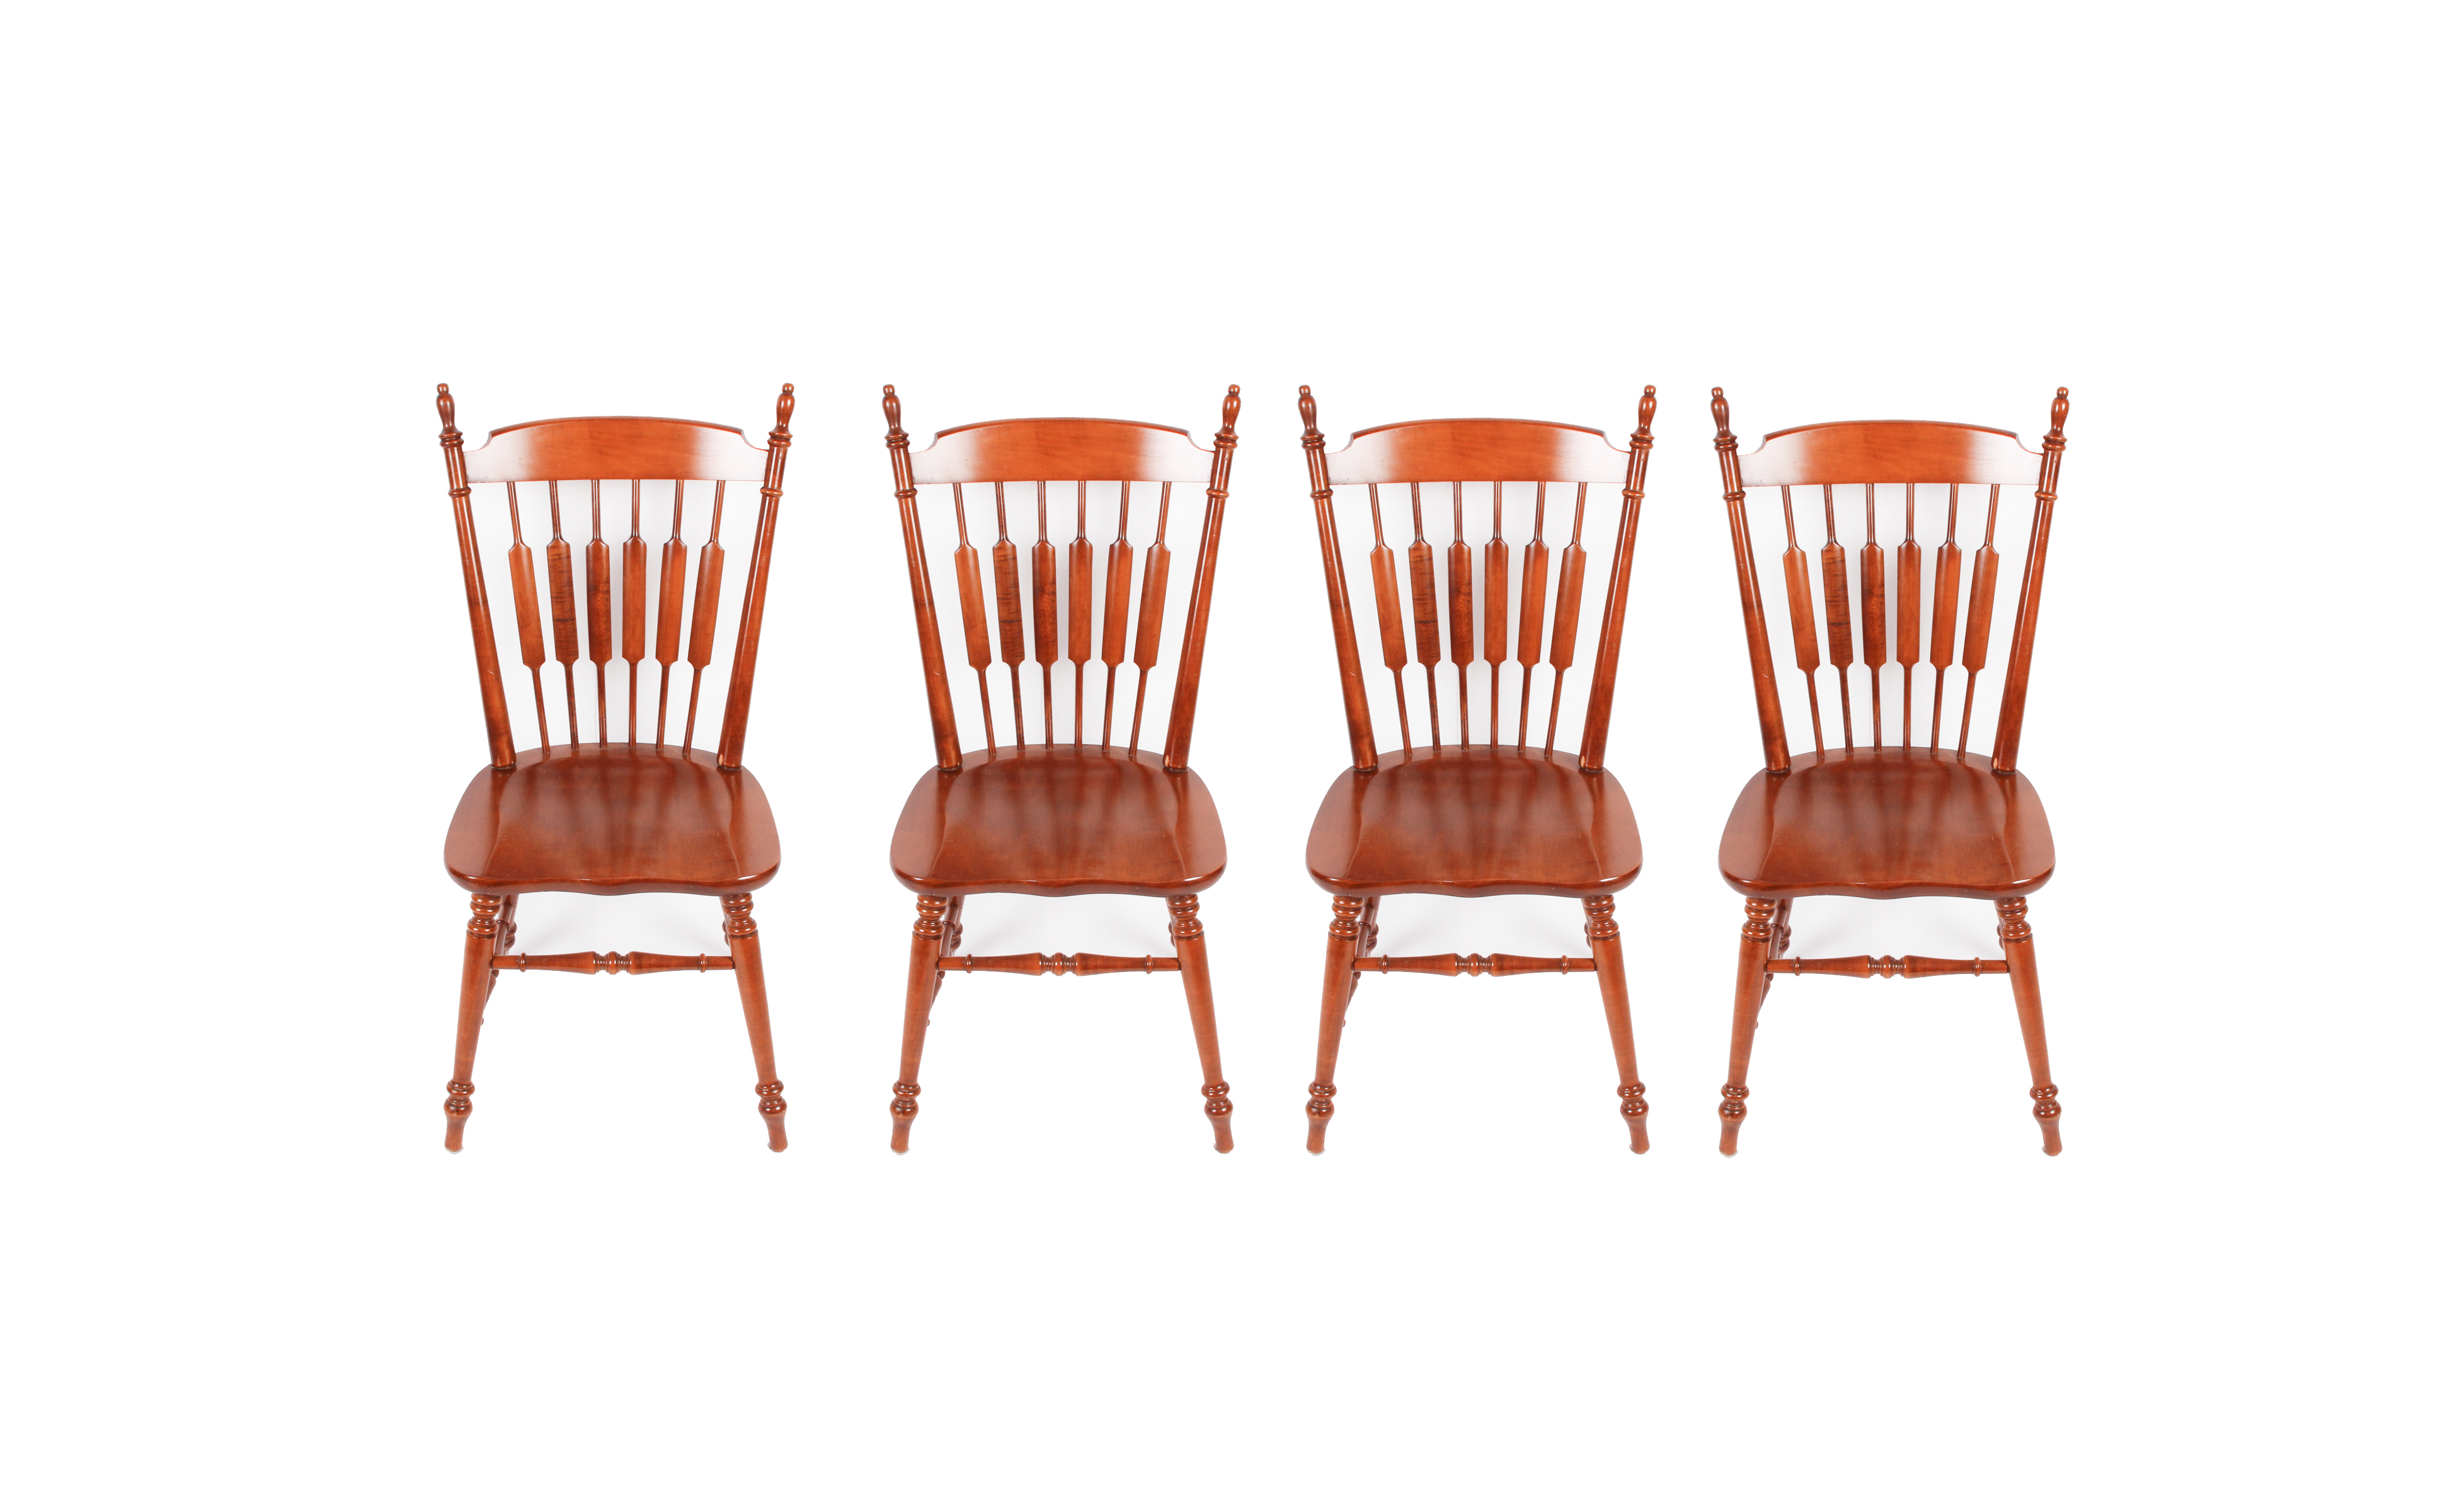 tell city chairs pattern 4222 outdoor chair covers canadian tire co walnut dining ebth